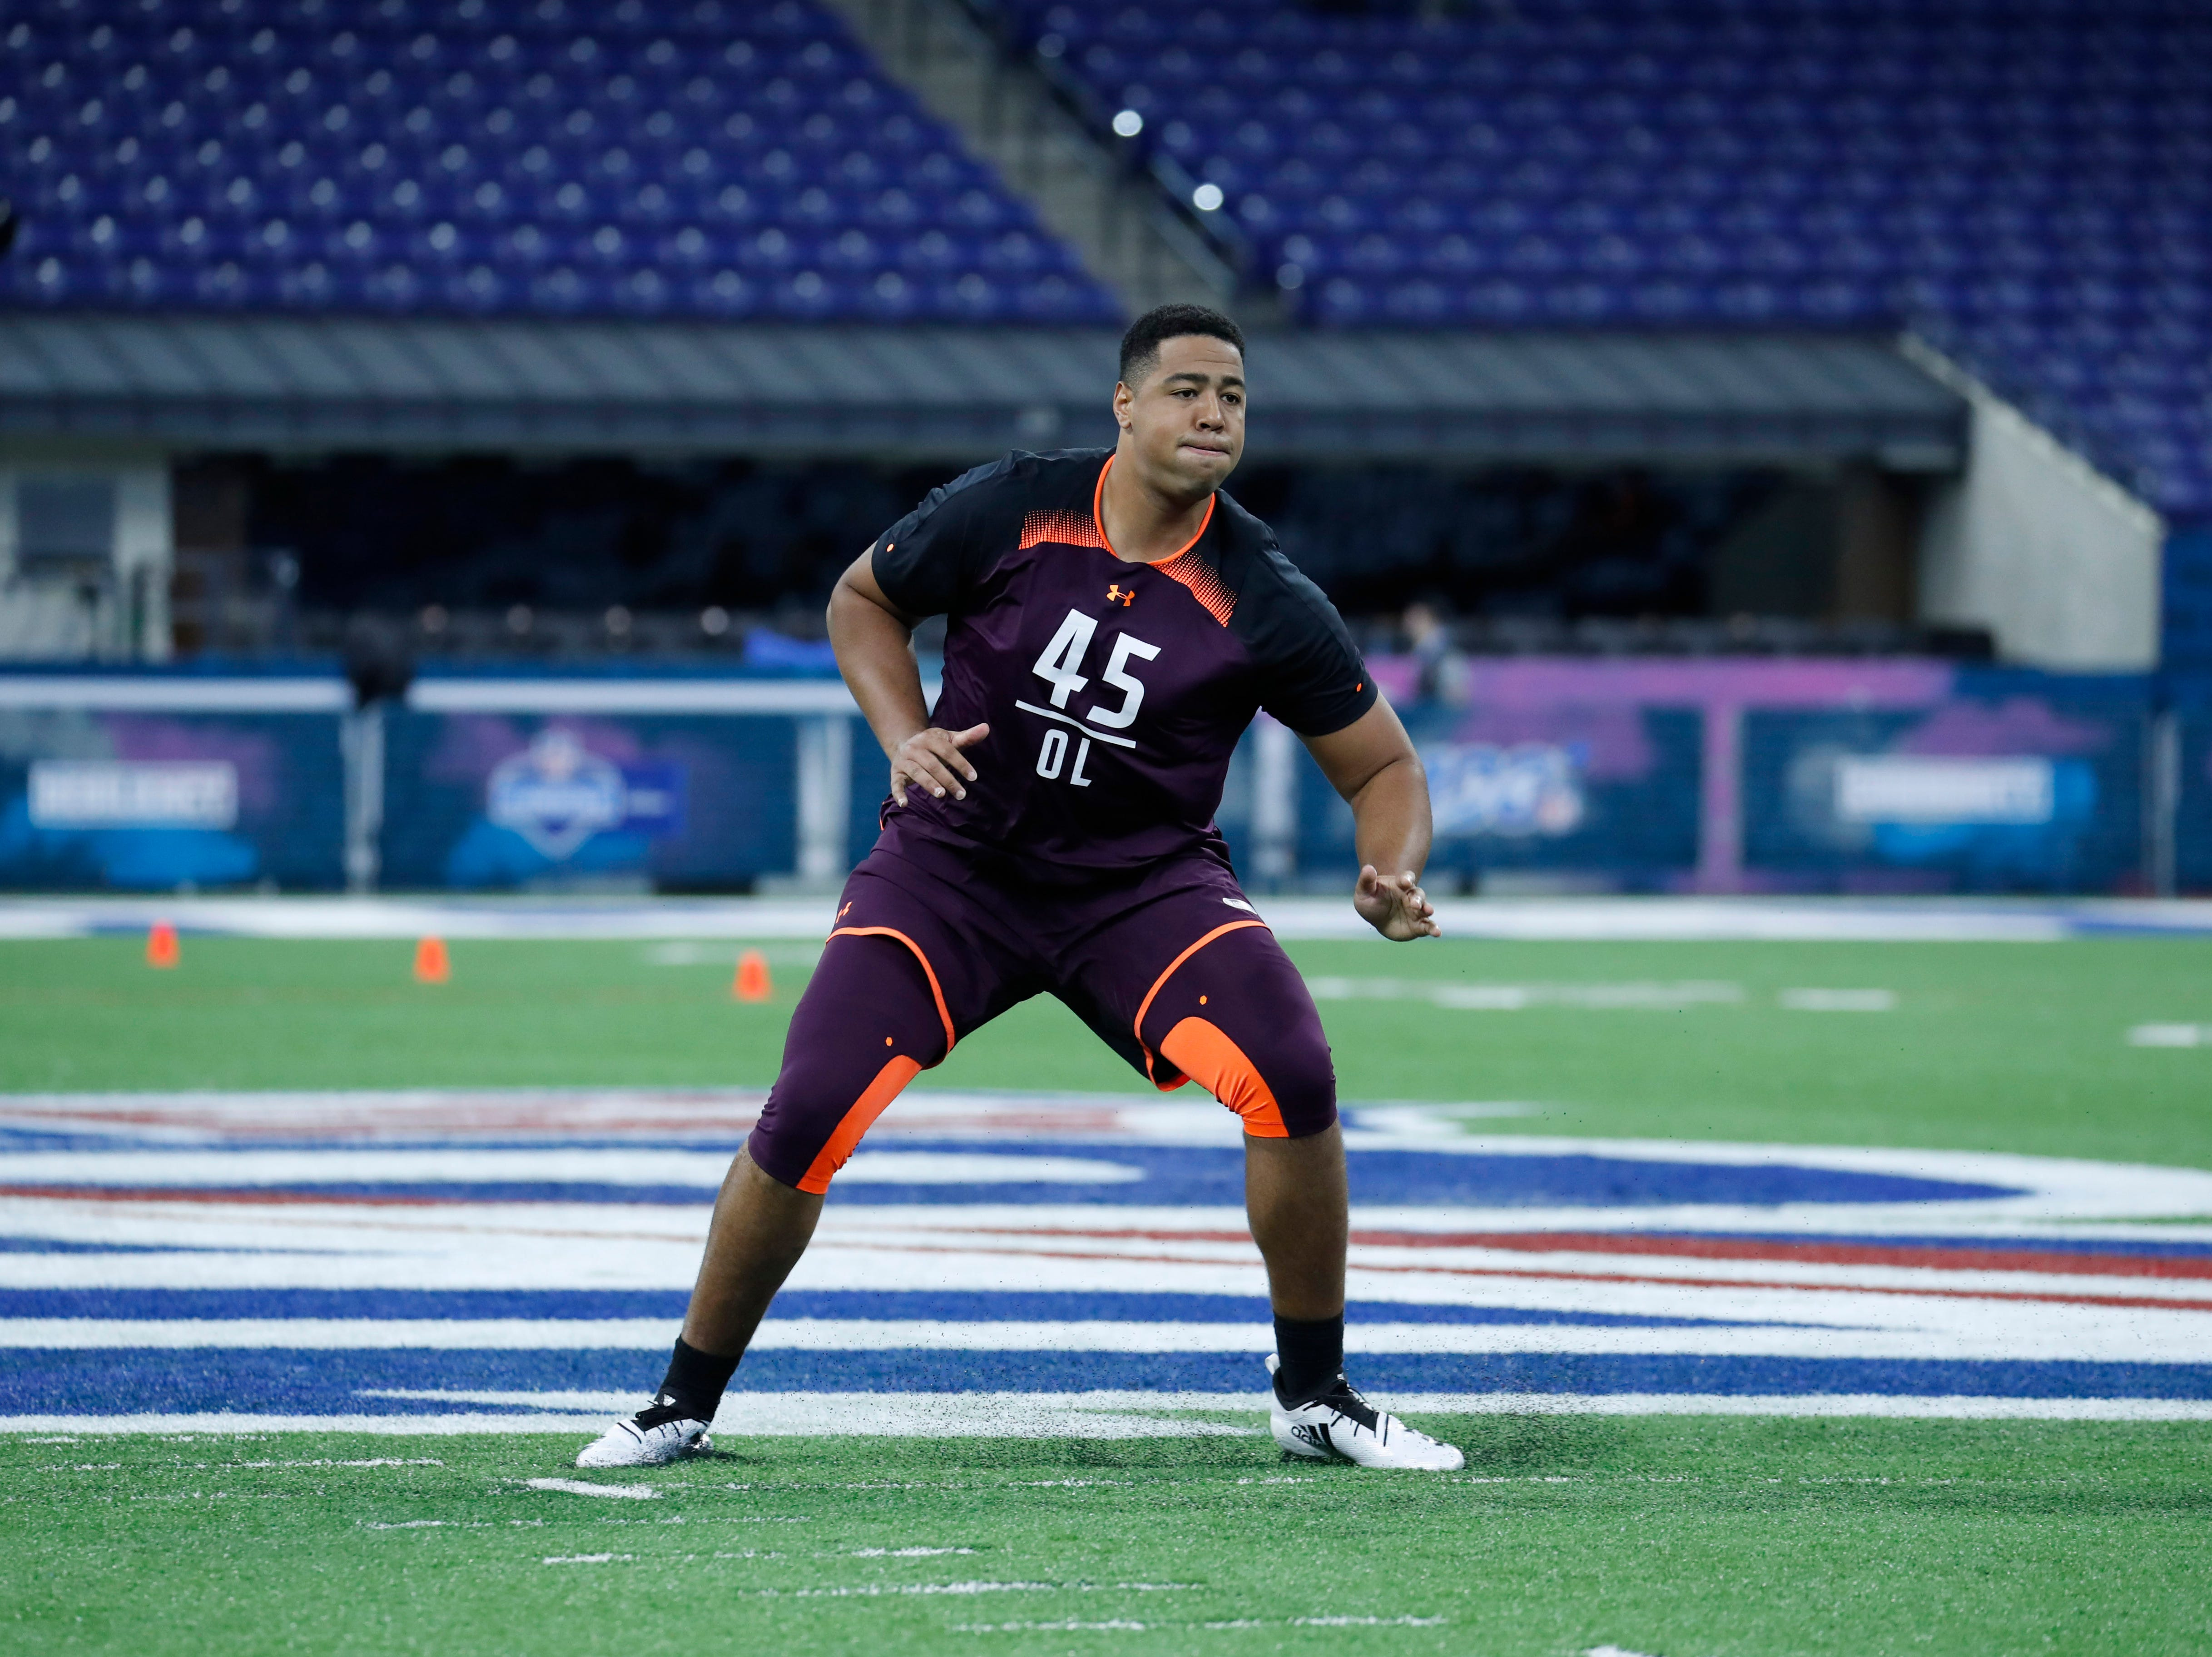 Mar 1, 2019; Indianapolis, IN, USA; Sioux Falls offensive lineman Trey Pipkins (OL45) goes through workout drills during the 2019 NFL Combine at Lucas Oil Stadium. Mandatory Credit: Brian Spurlock-USA TODAY Sports